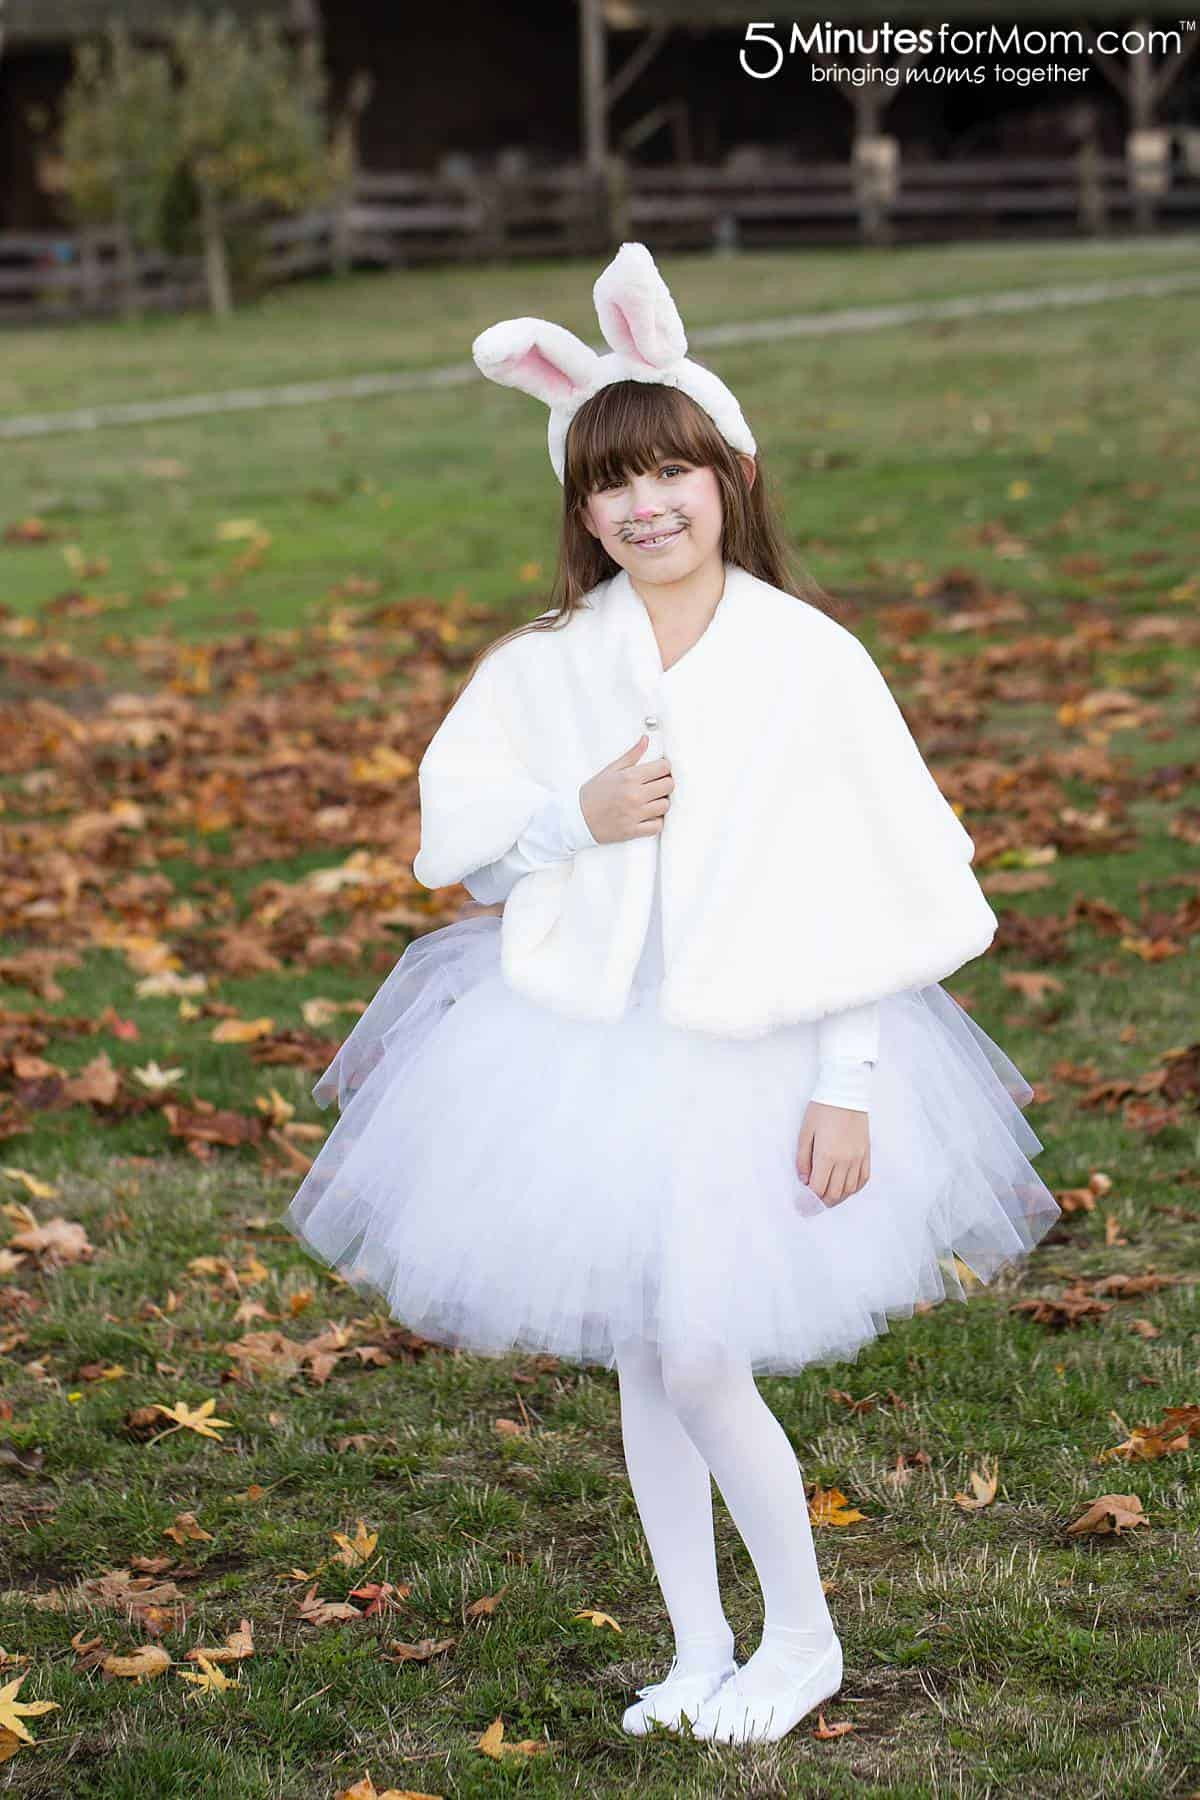 Best ideas about DIY Rabbit Costume . Save or Pin DIY Girls Halloween Costumes 5 Minutes for Mom Now.